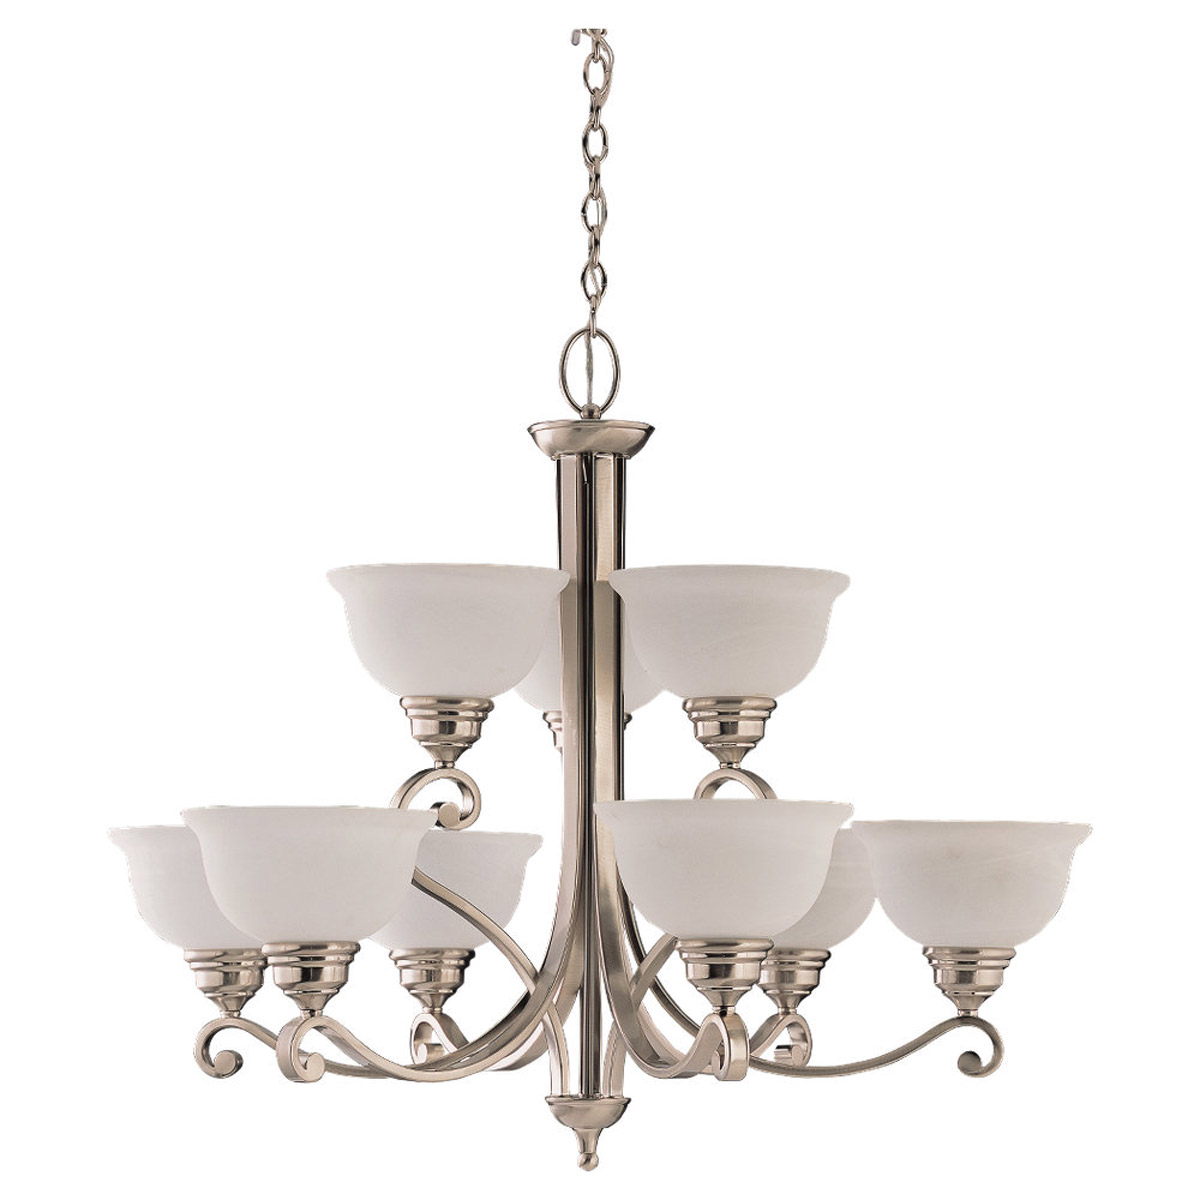 Sea Gull Lighting Serenity 9 Light Chandelier in Brushed Nickel 39060BLE-962